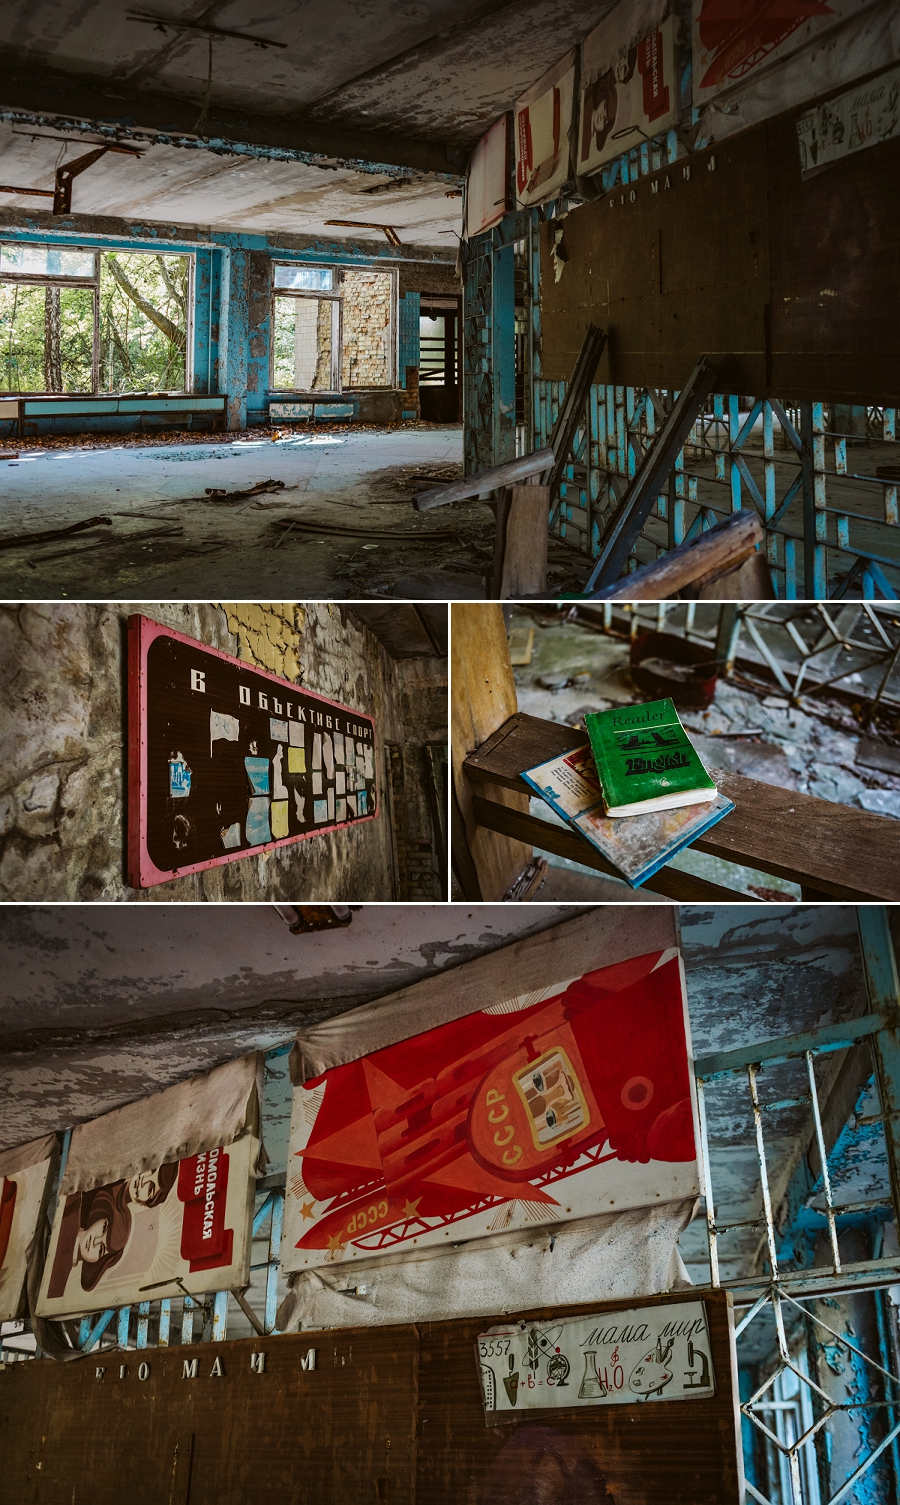 high school no 2 in pripyat, ukraine